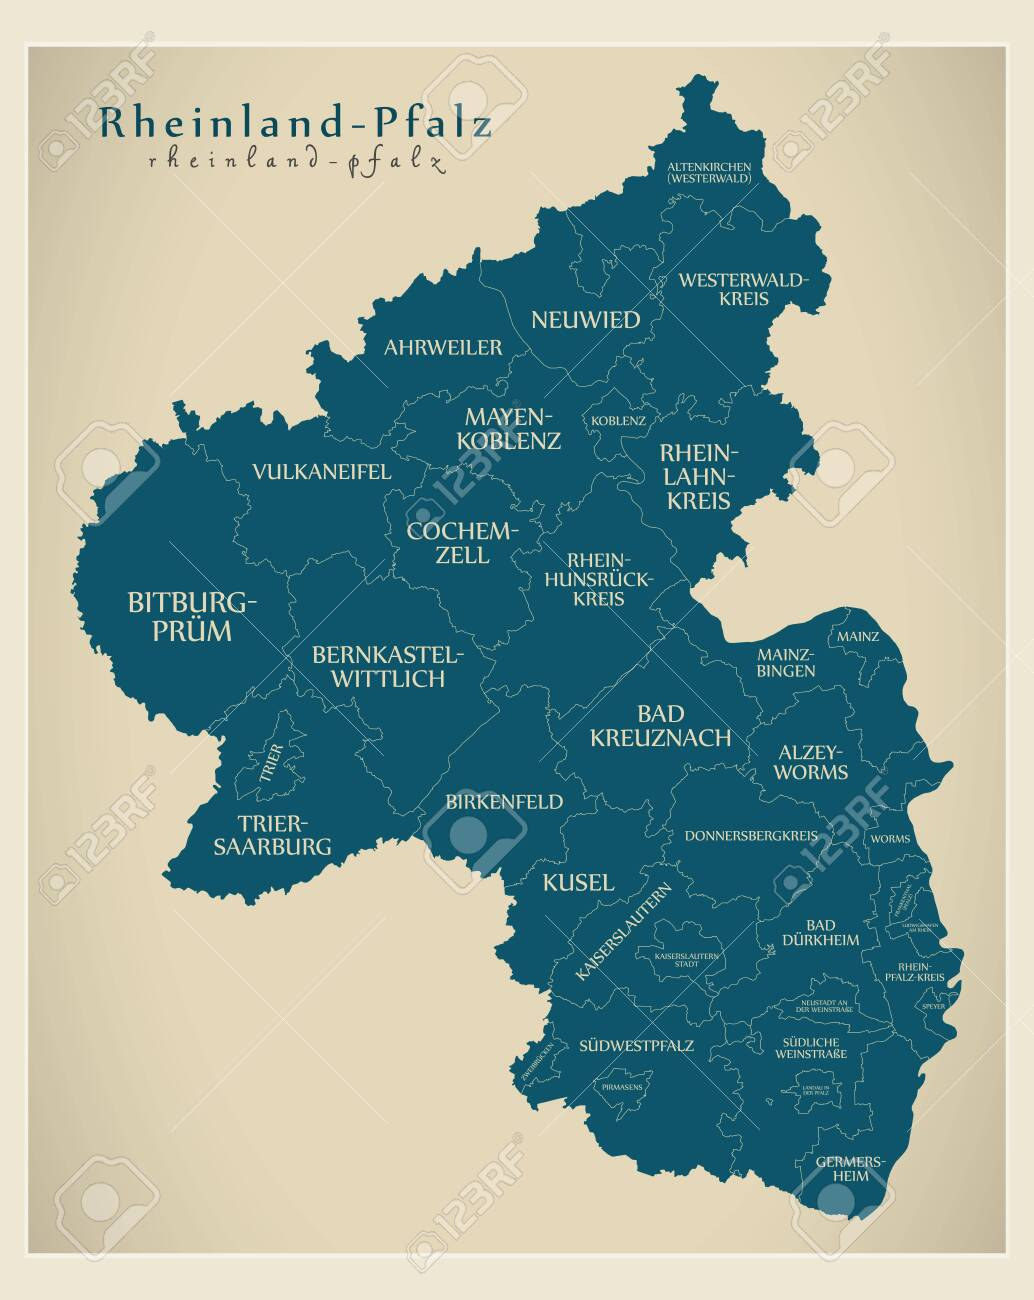 Modern Map Of Germany.Modern Map Rhineland Palatinate Map Of Germany With Counties